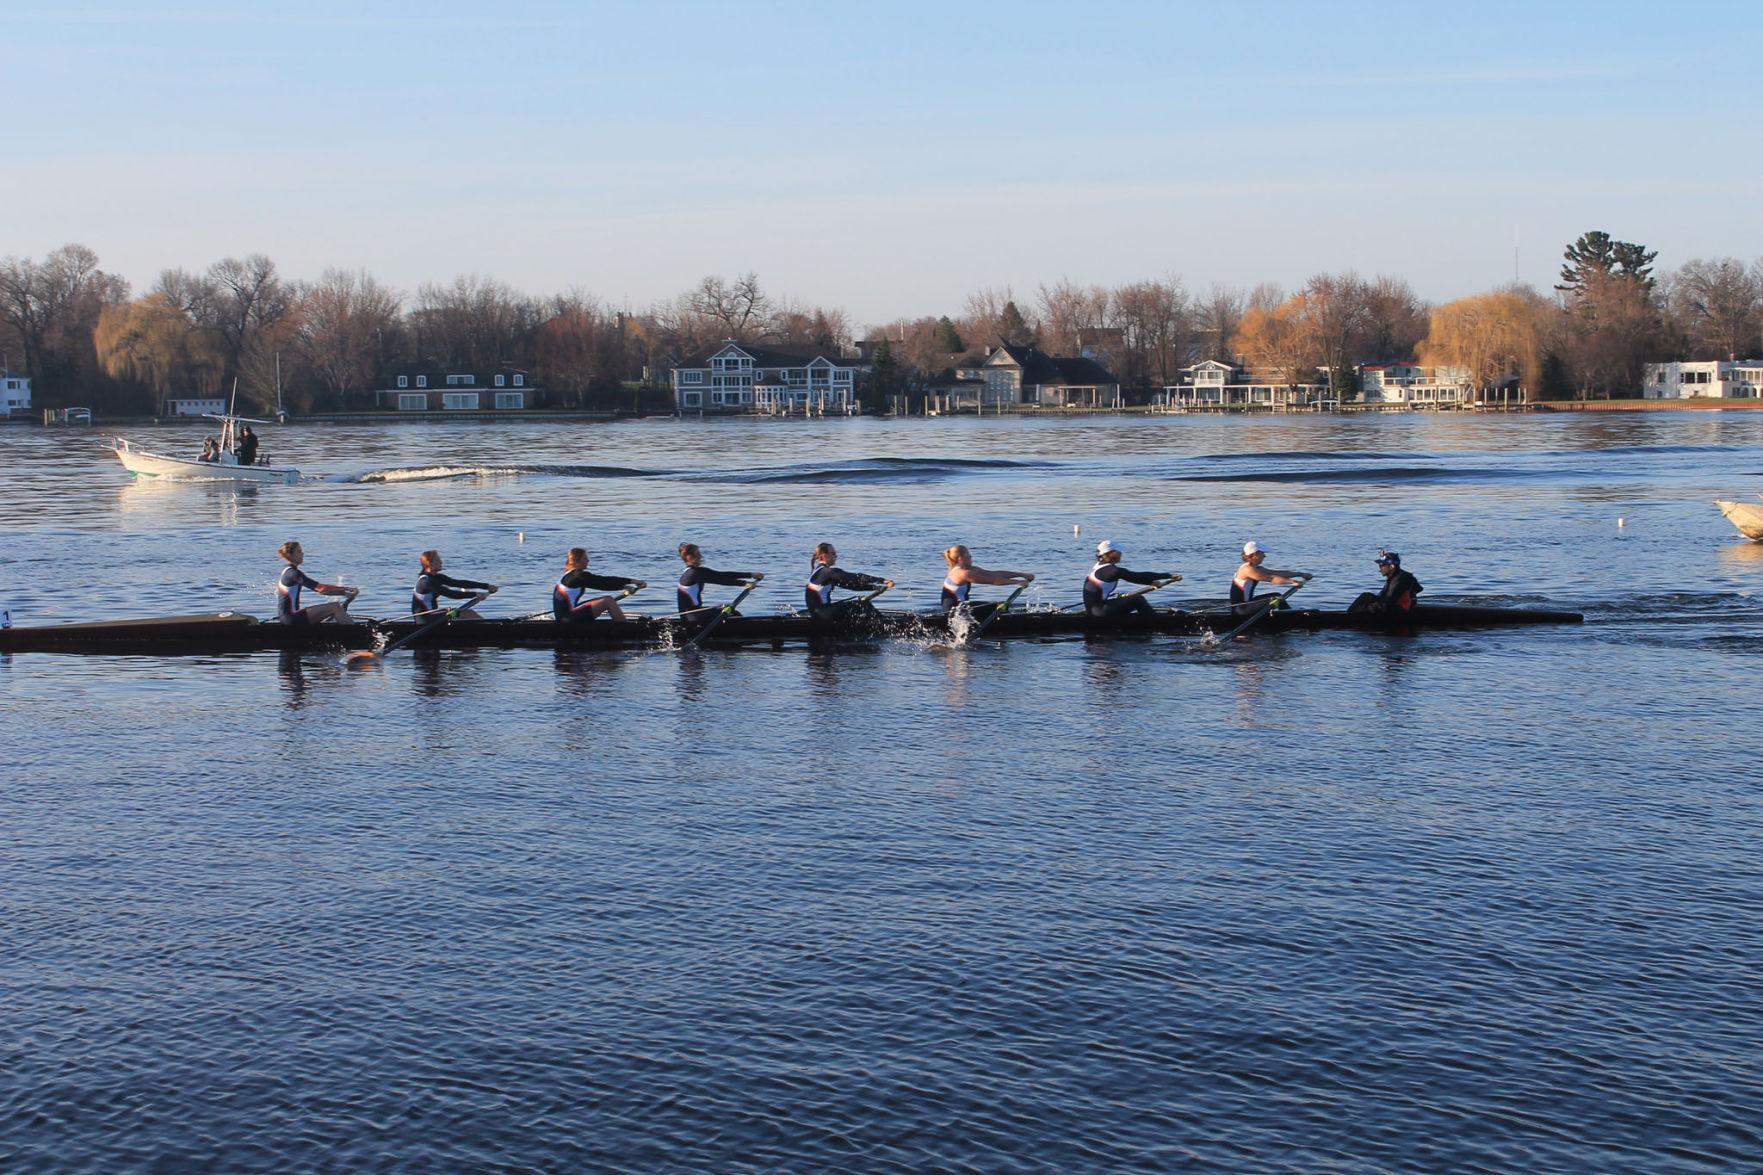 The Illinois women's rowing team compete in the Lubbers Cup in Michigan.